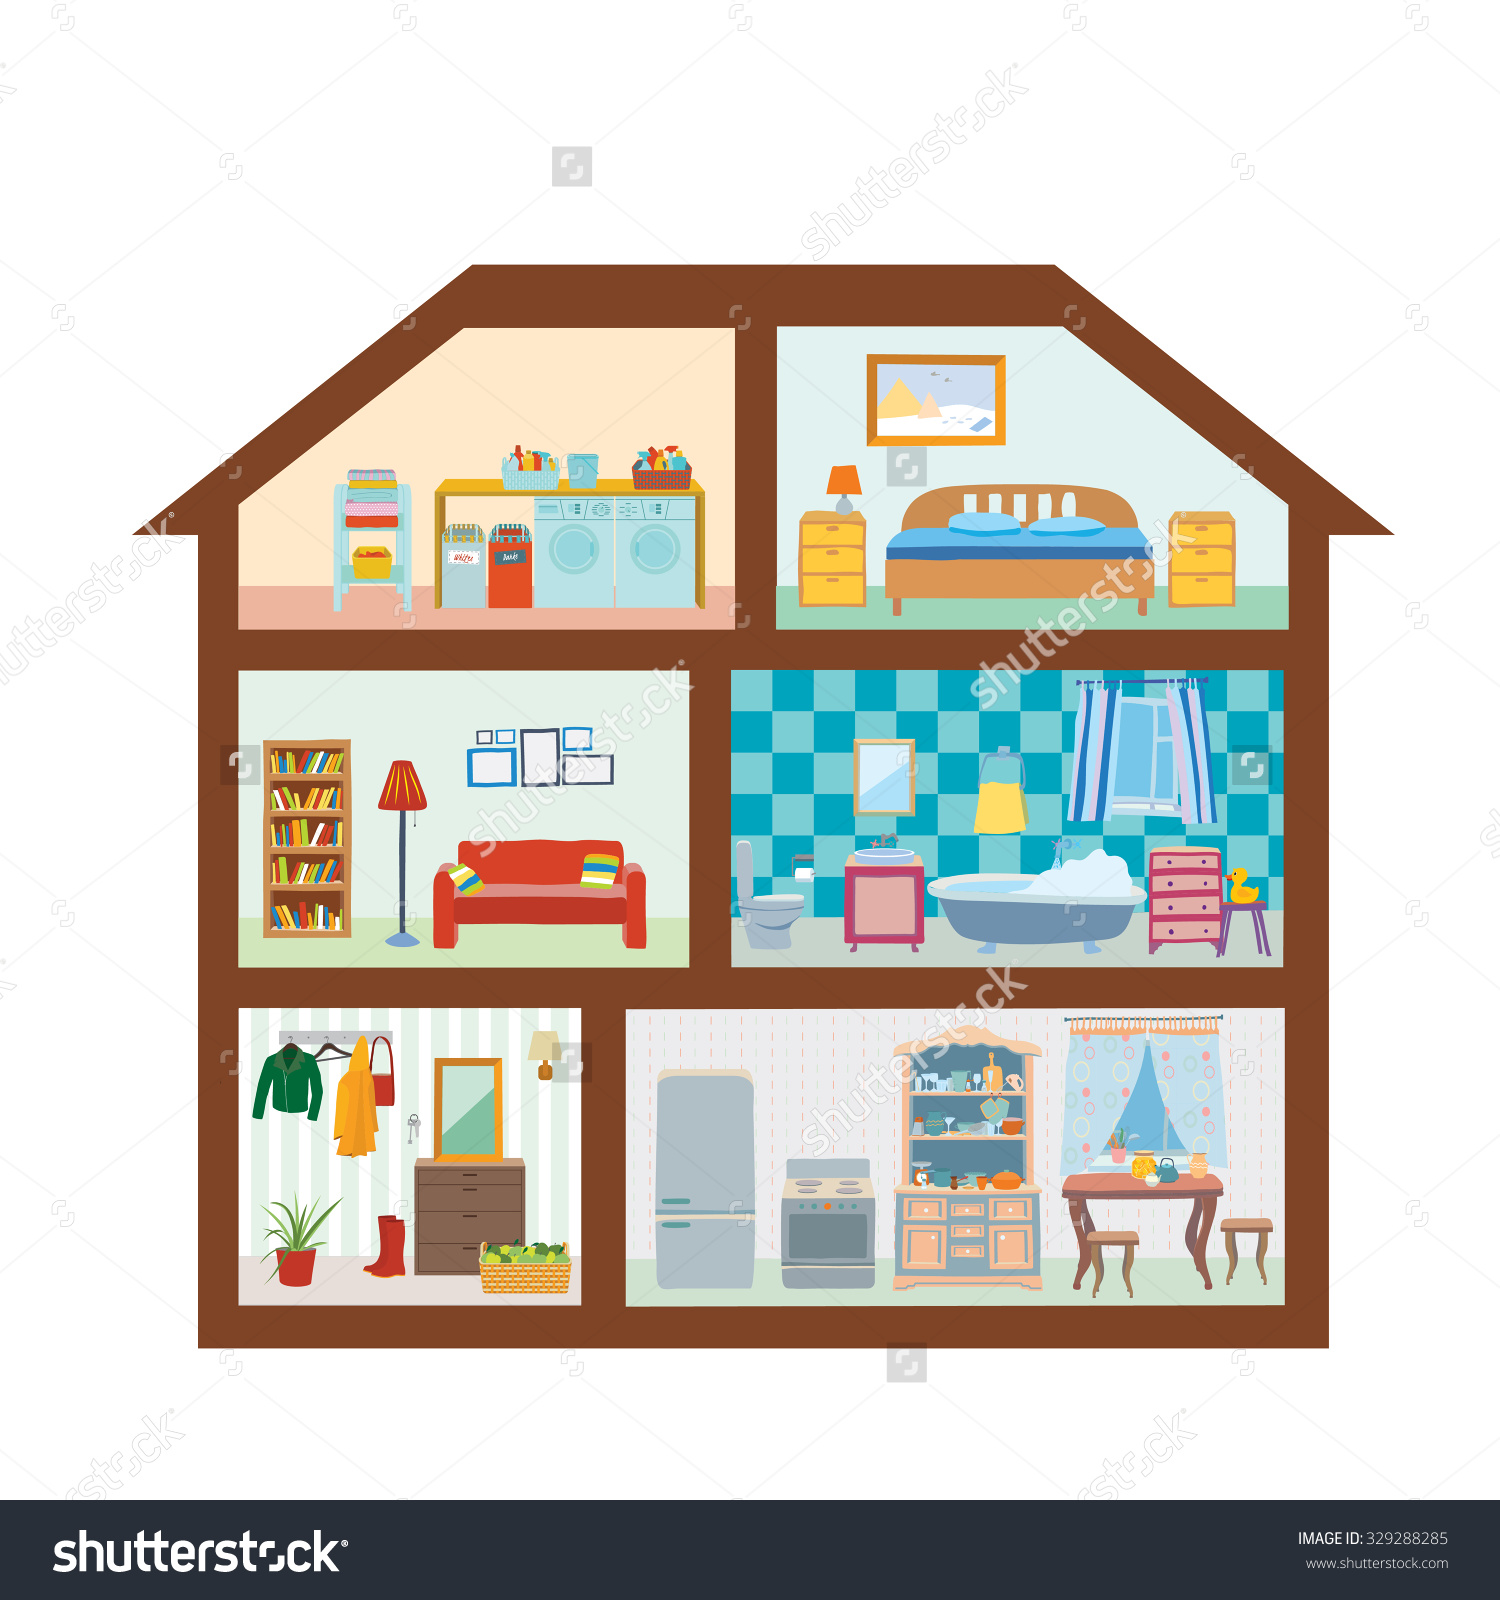 Rooms In The House. rooms of the house clipart   Clipground